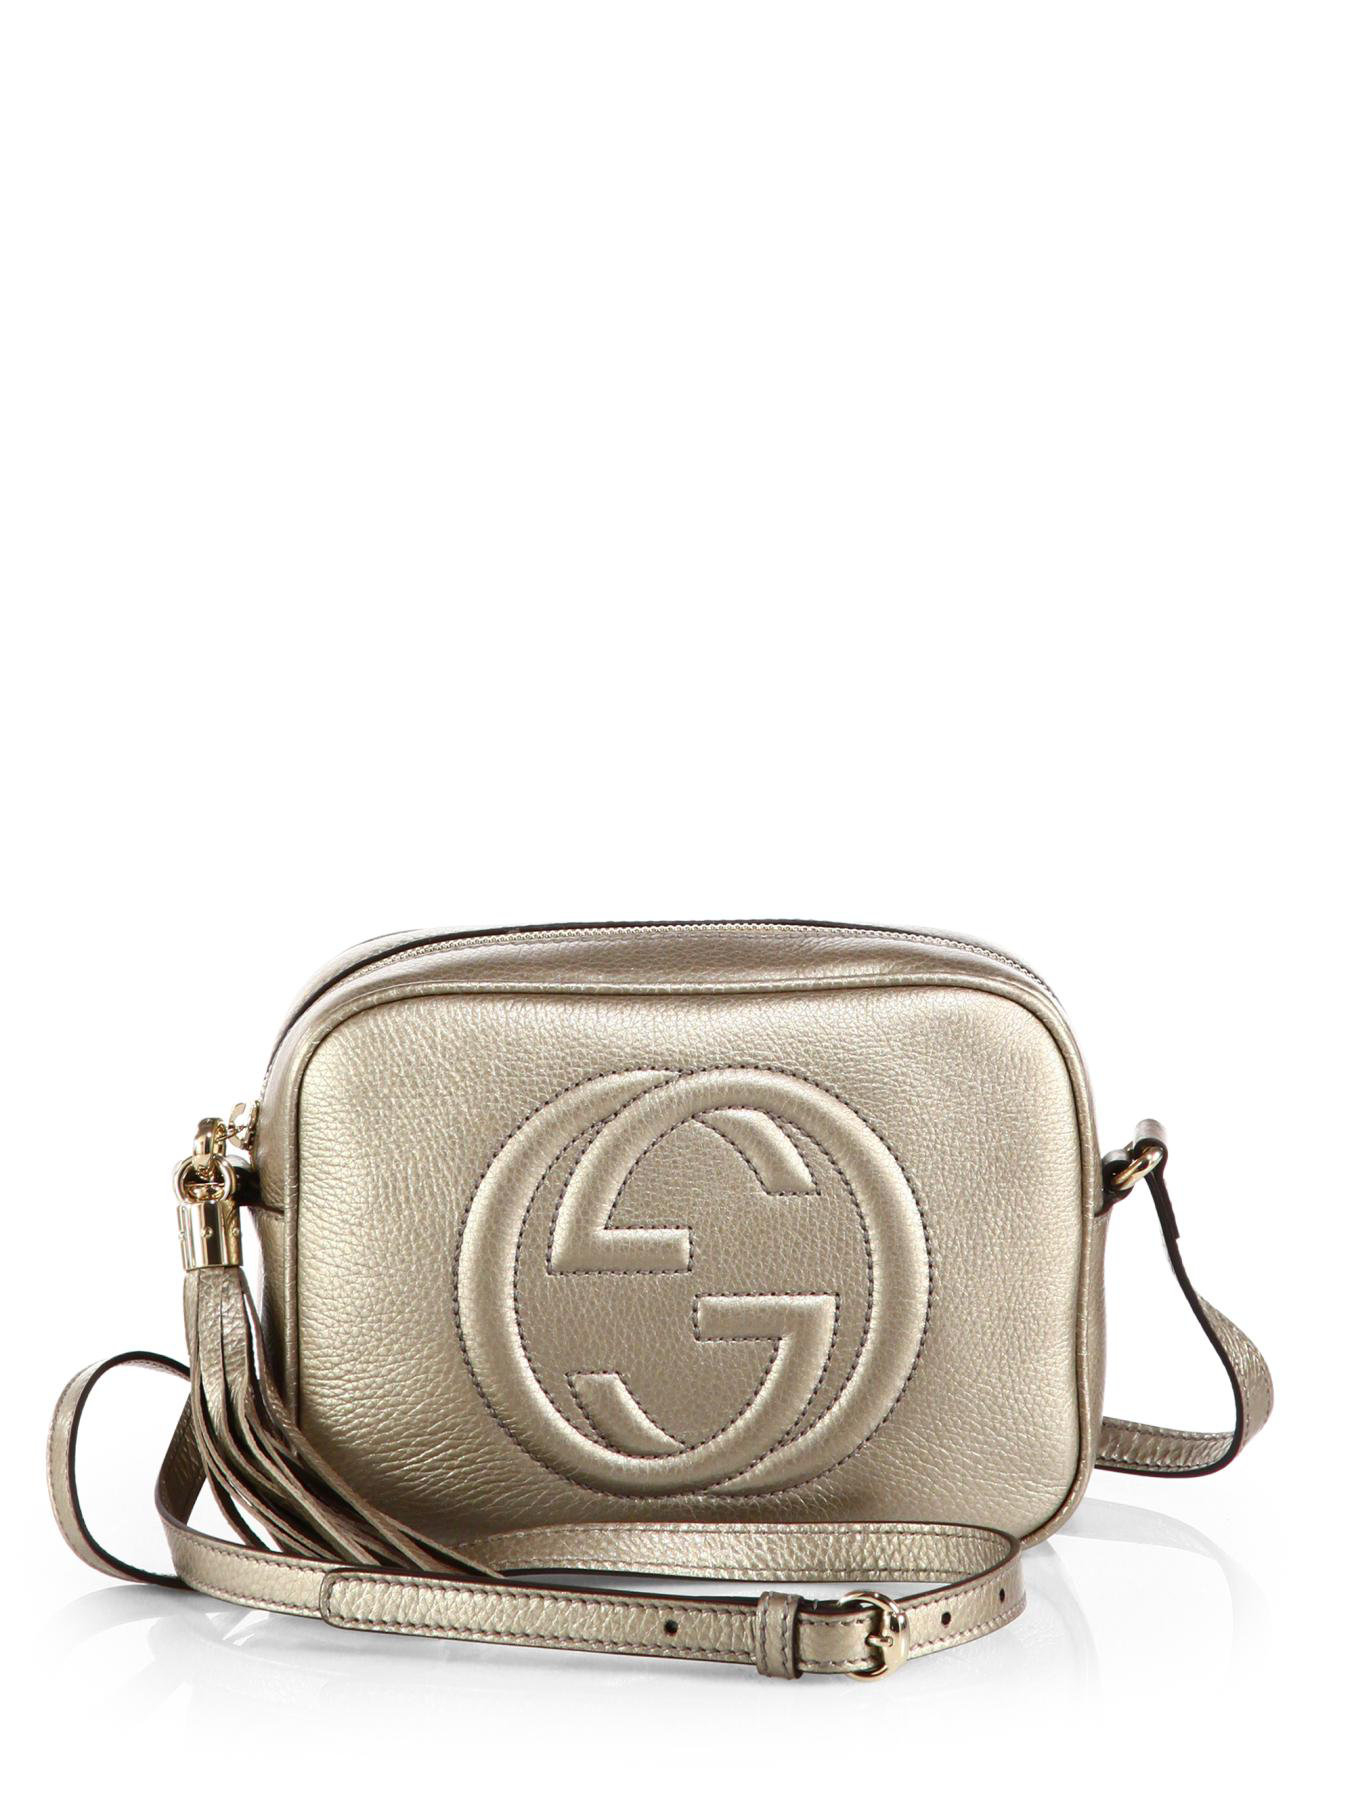 bfe6b0241d2a0 Gallery. Previously sold at  Saks Fifth Avenue · Women s Gucci Soho Bag